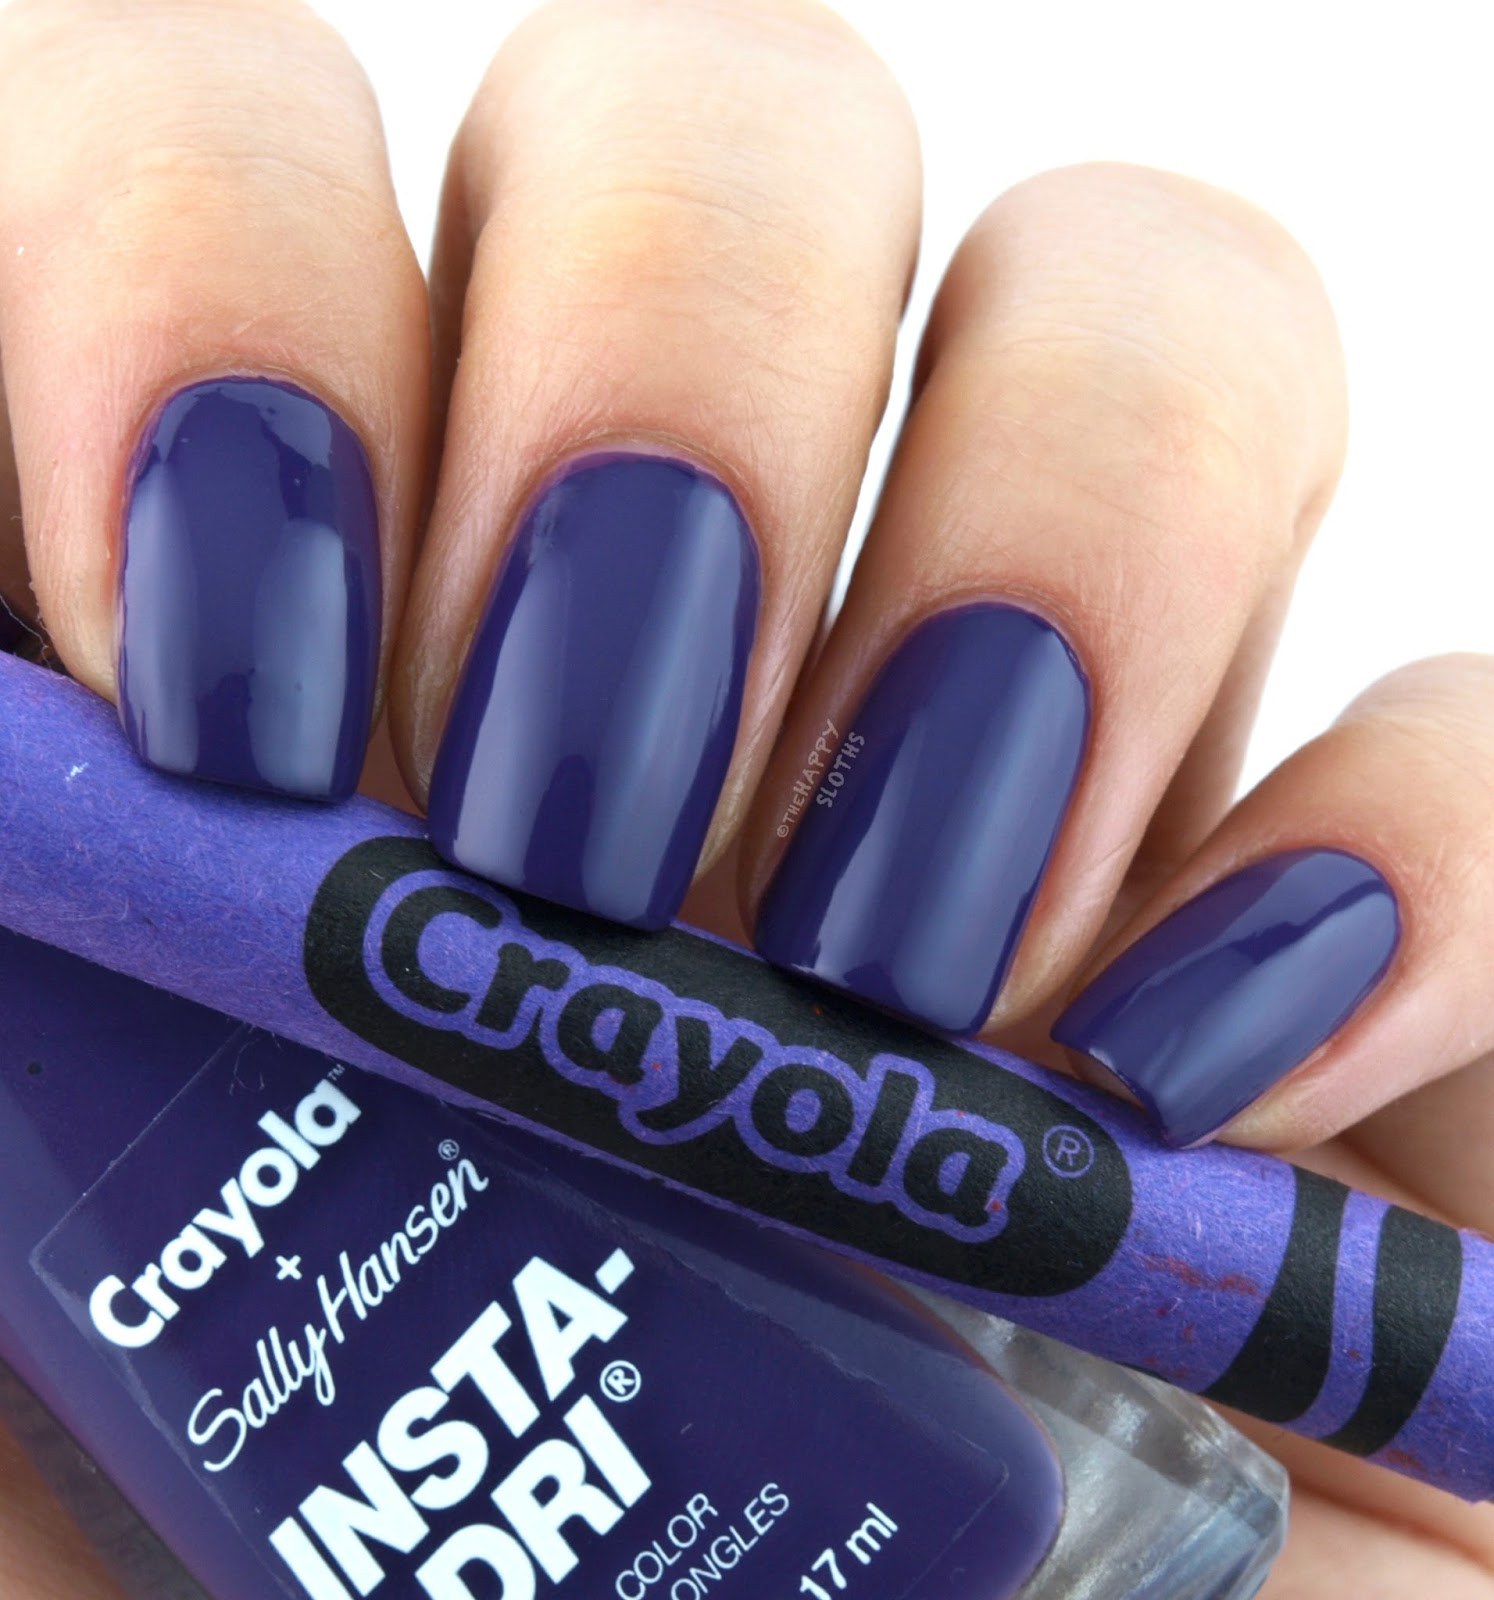 Sally Hansen + Crayola Collection | 508 Vivid Violet: Review and Swatches